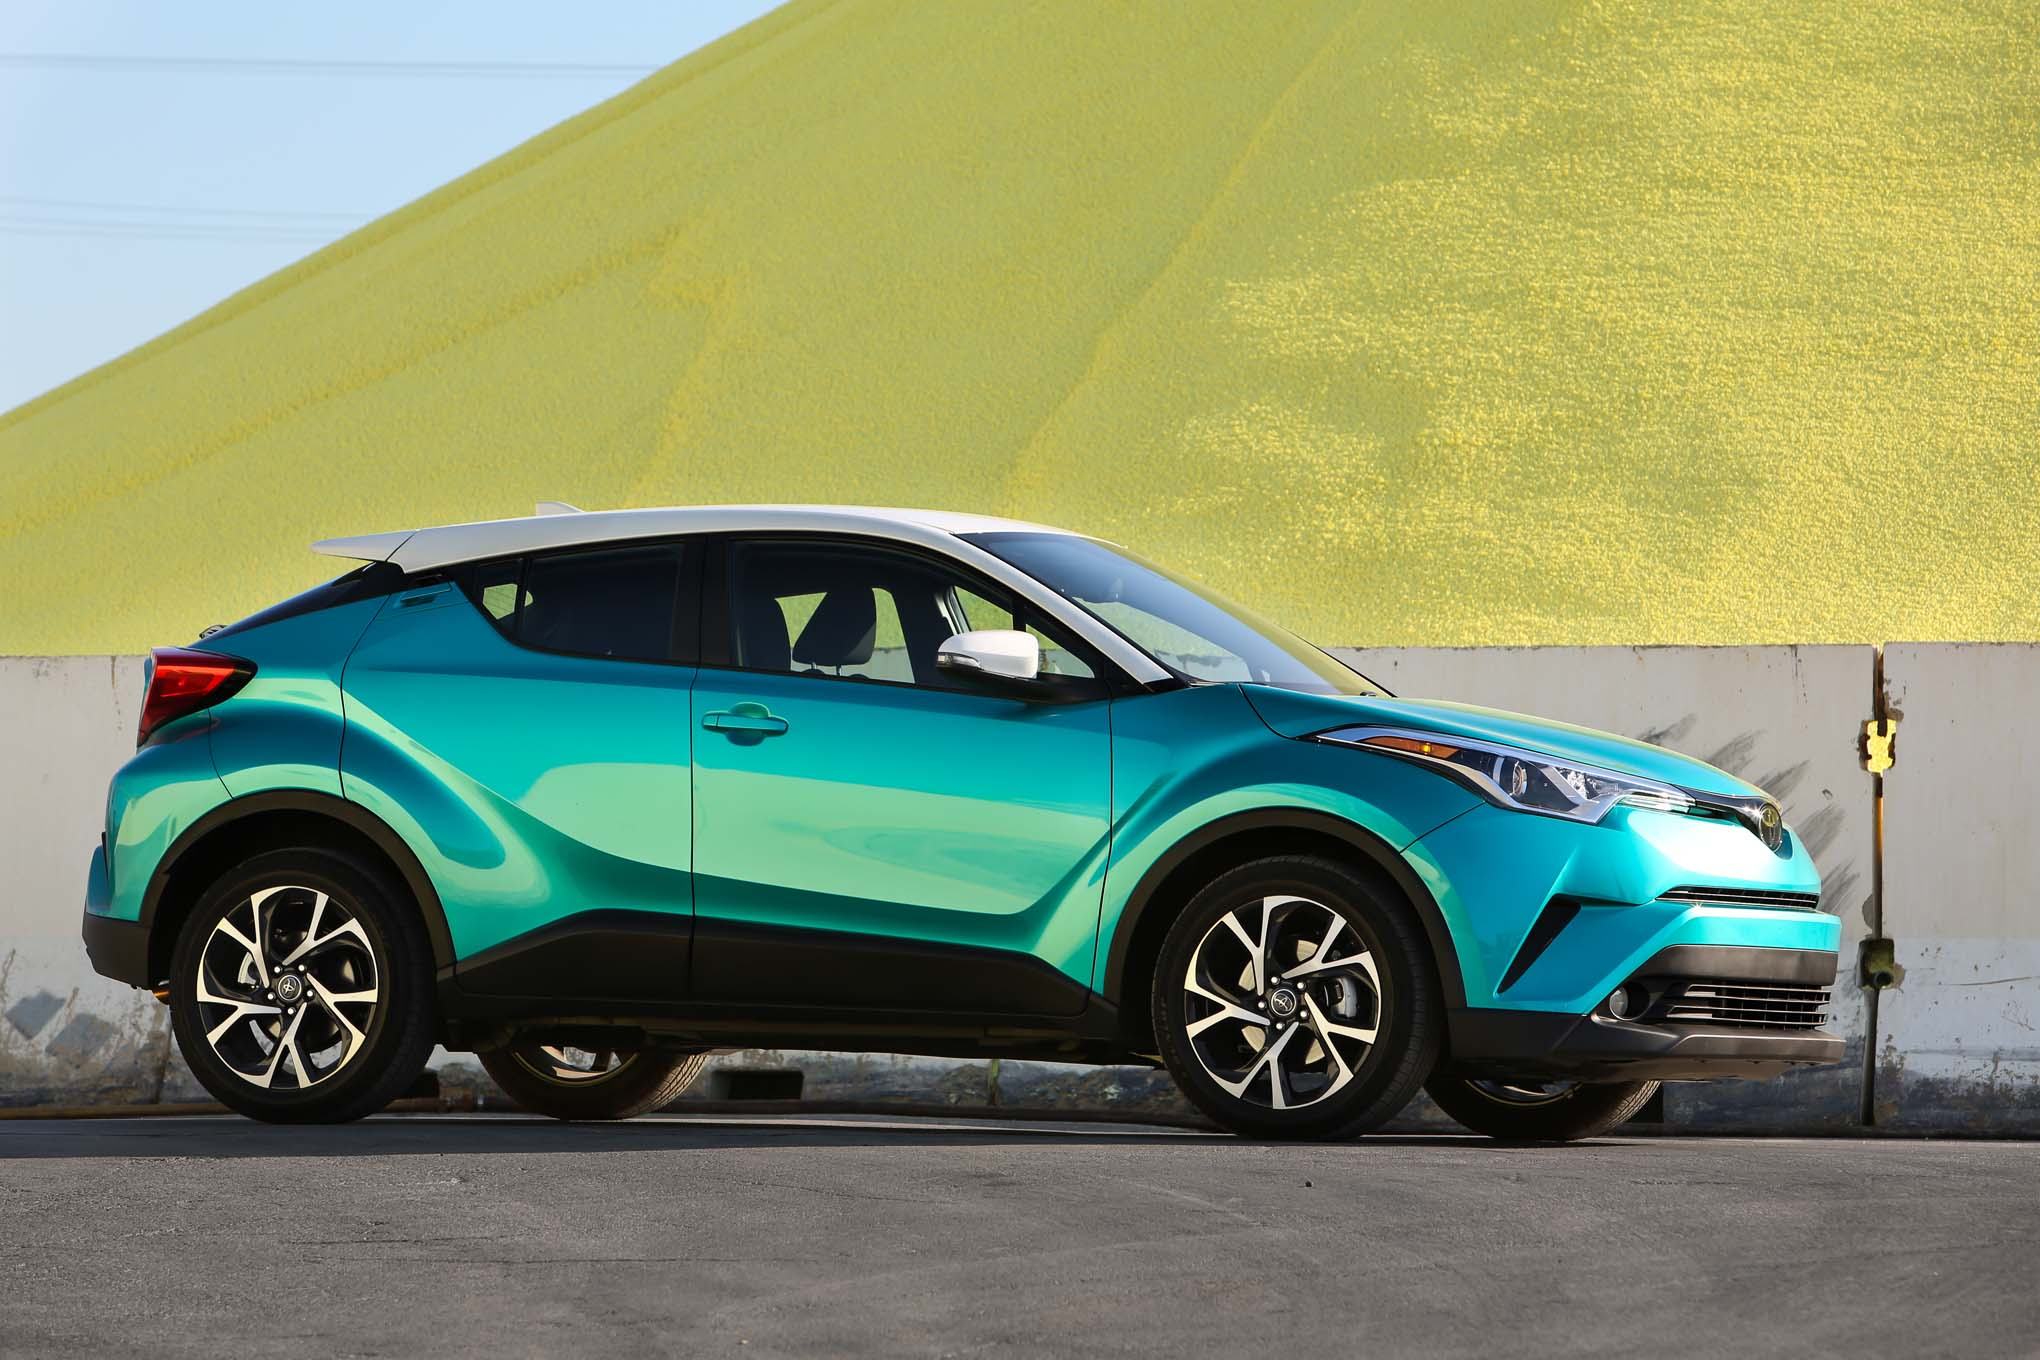 Modified Toyota CHR Crossover Heading to 24 Hours of Nurburgring